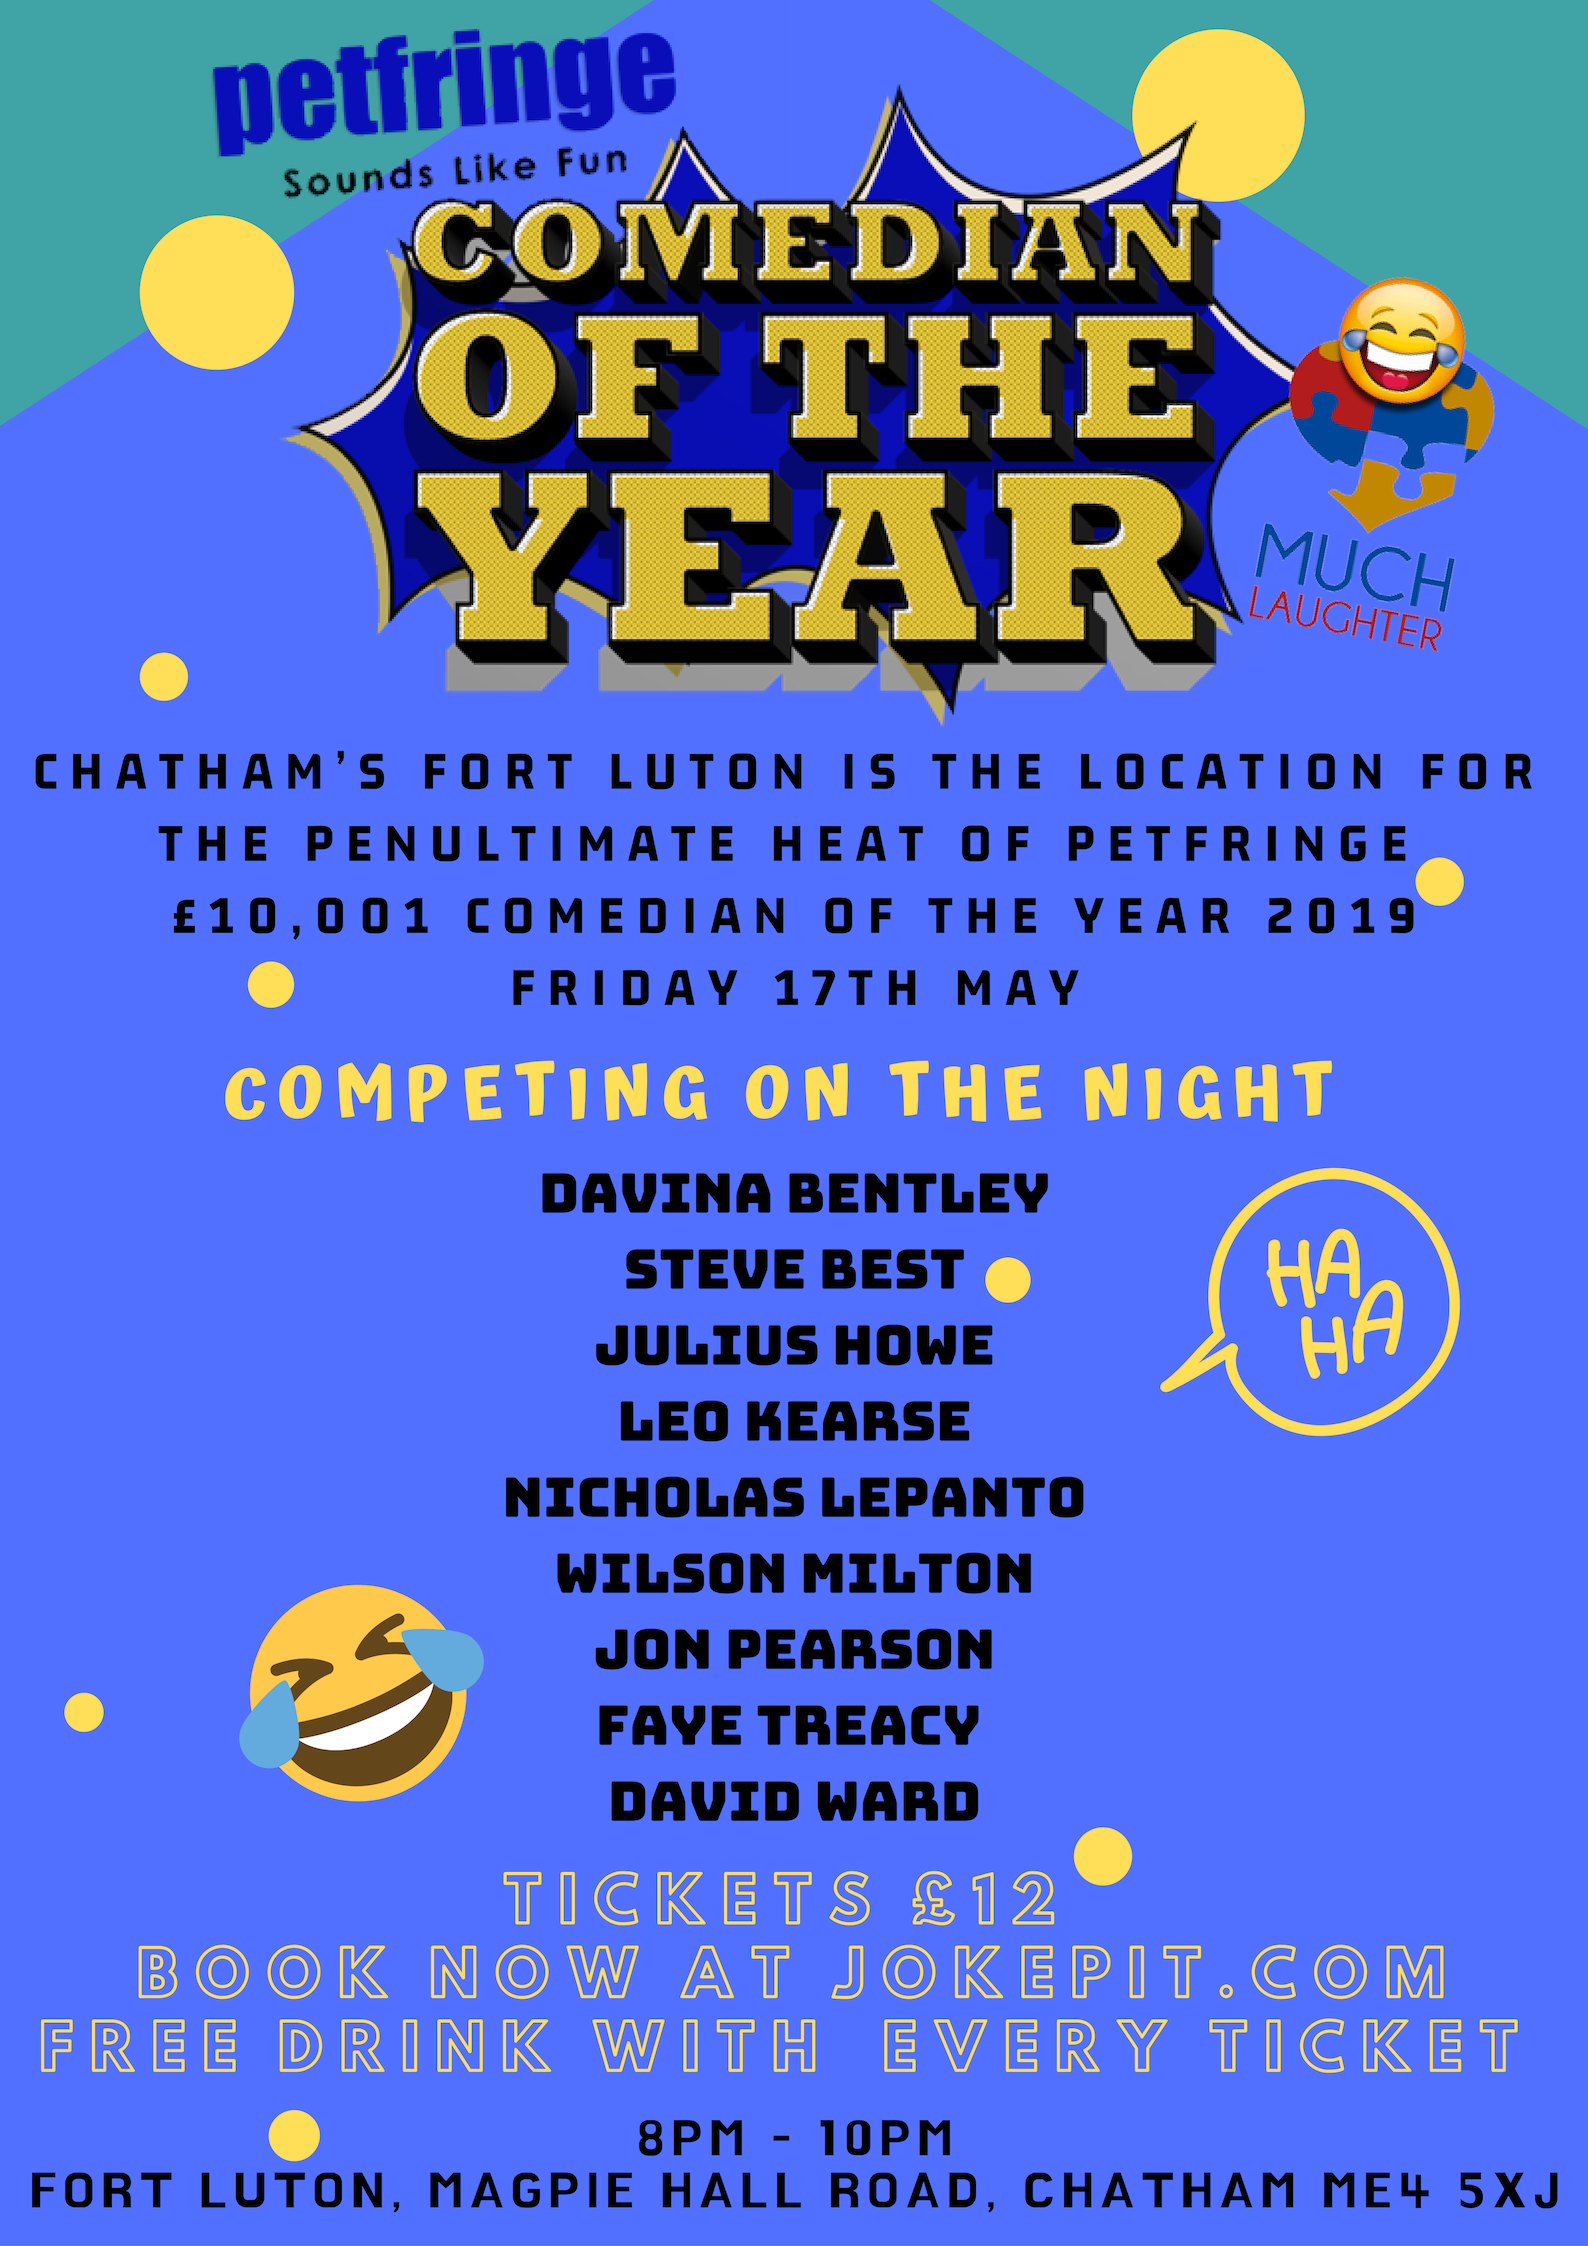 Petfringe  10 001 comedian of the year 2019 up much laughter friday 17th may